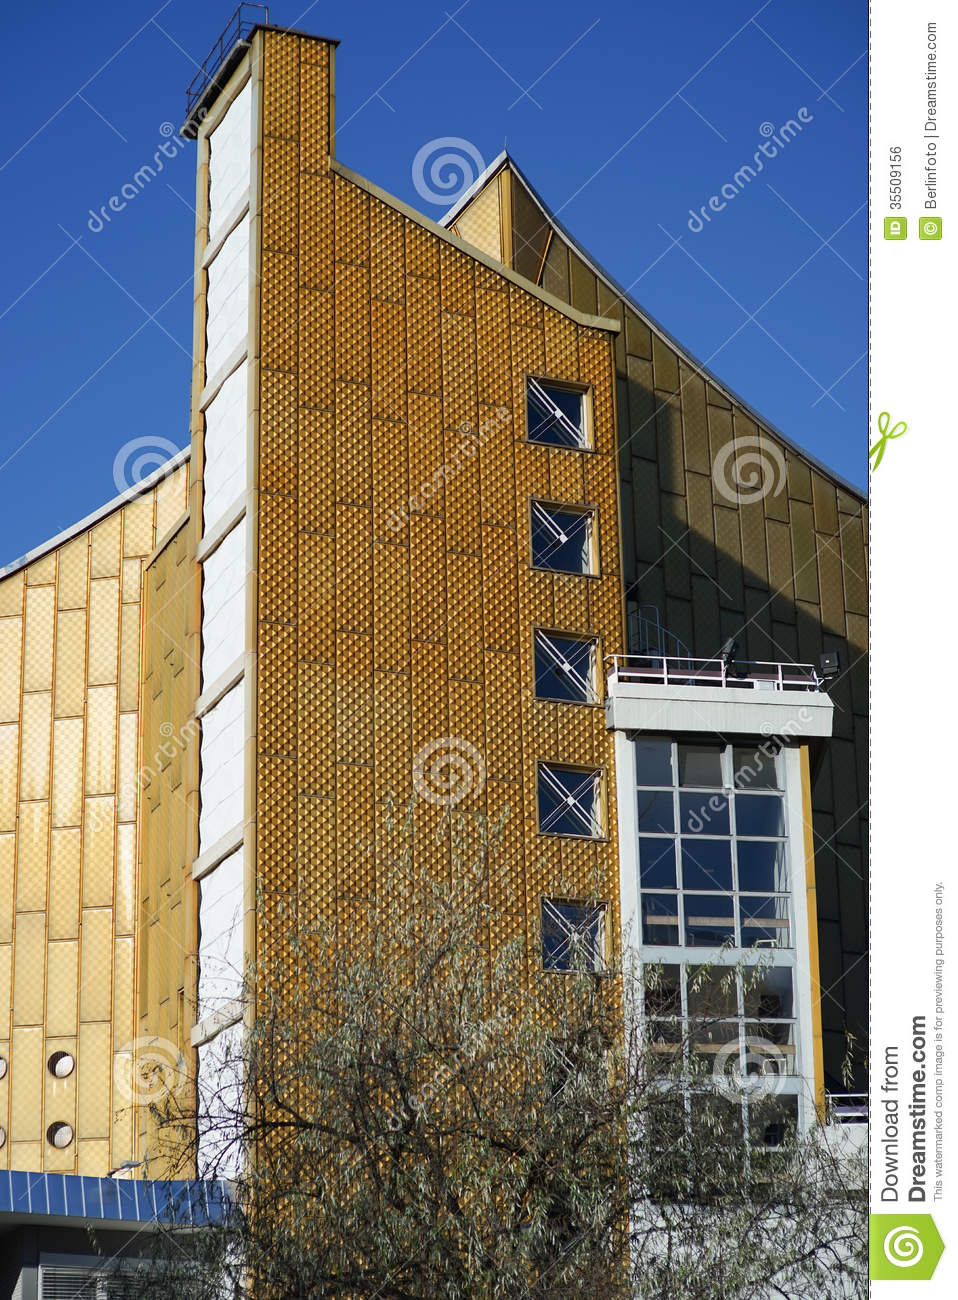 Berlin Philharmonic Orchestra Building Royalty Free Stock Image.